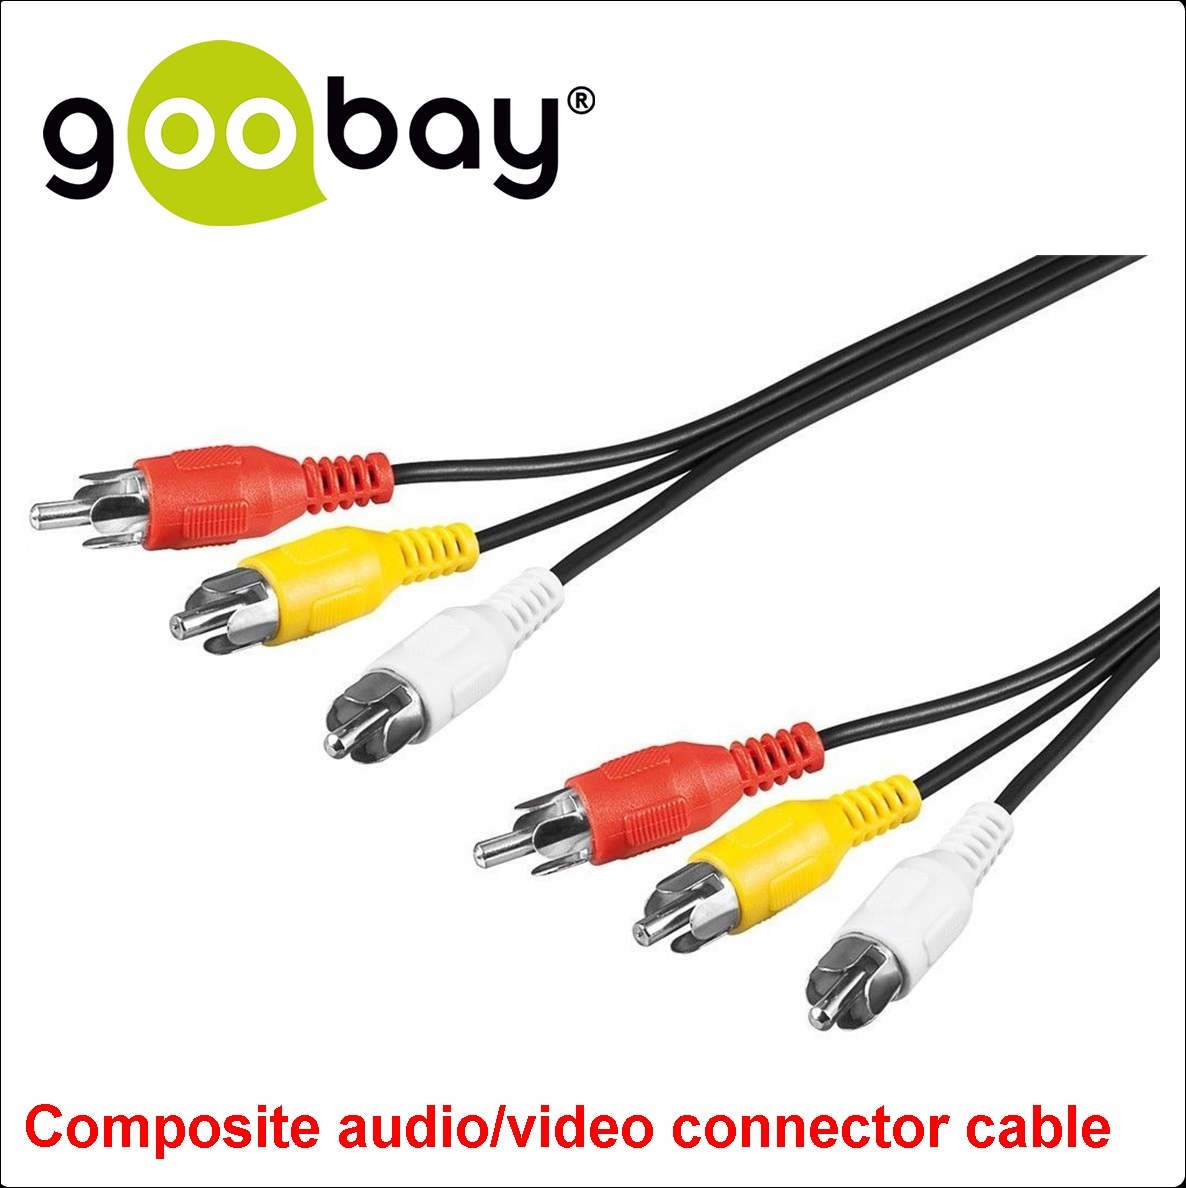 3 RCA male to  3 RCA male 1.5m GOOBAY 50380